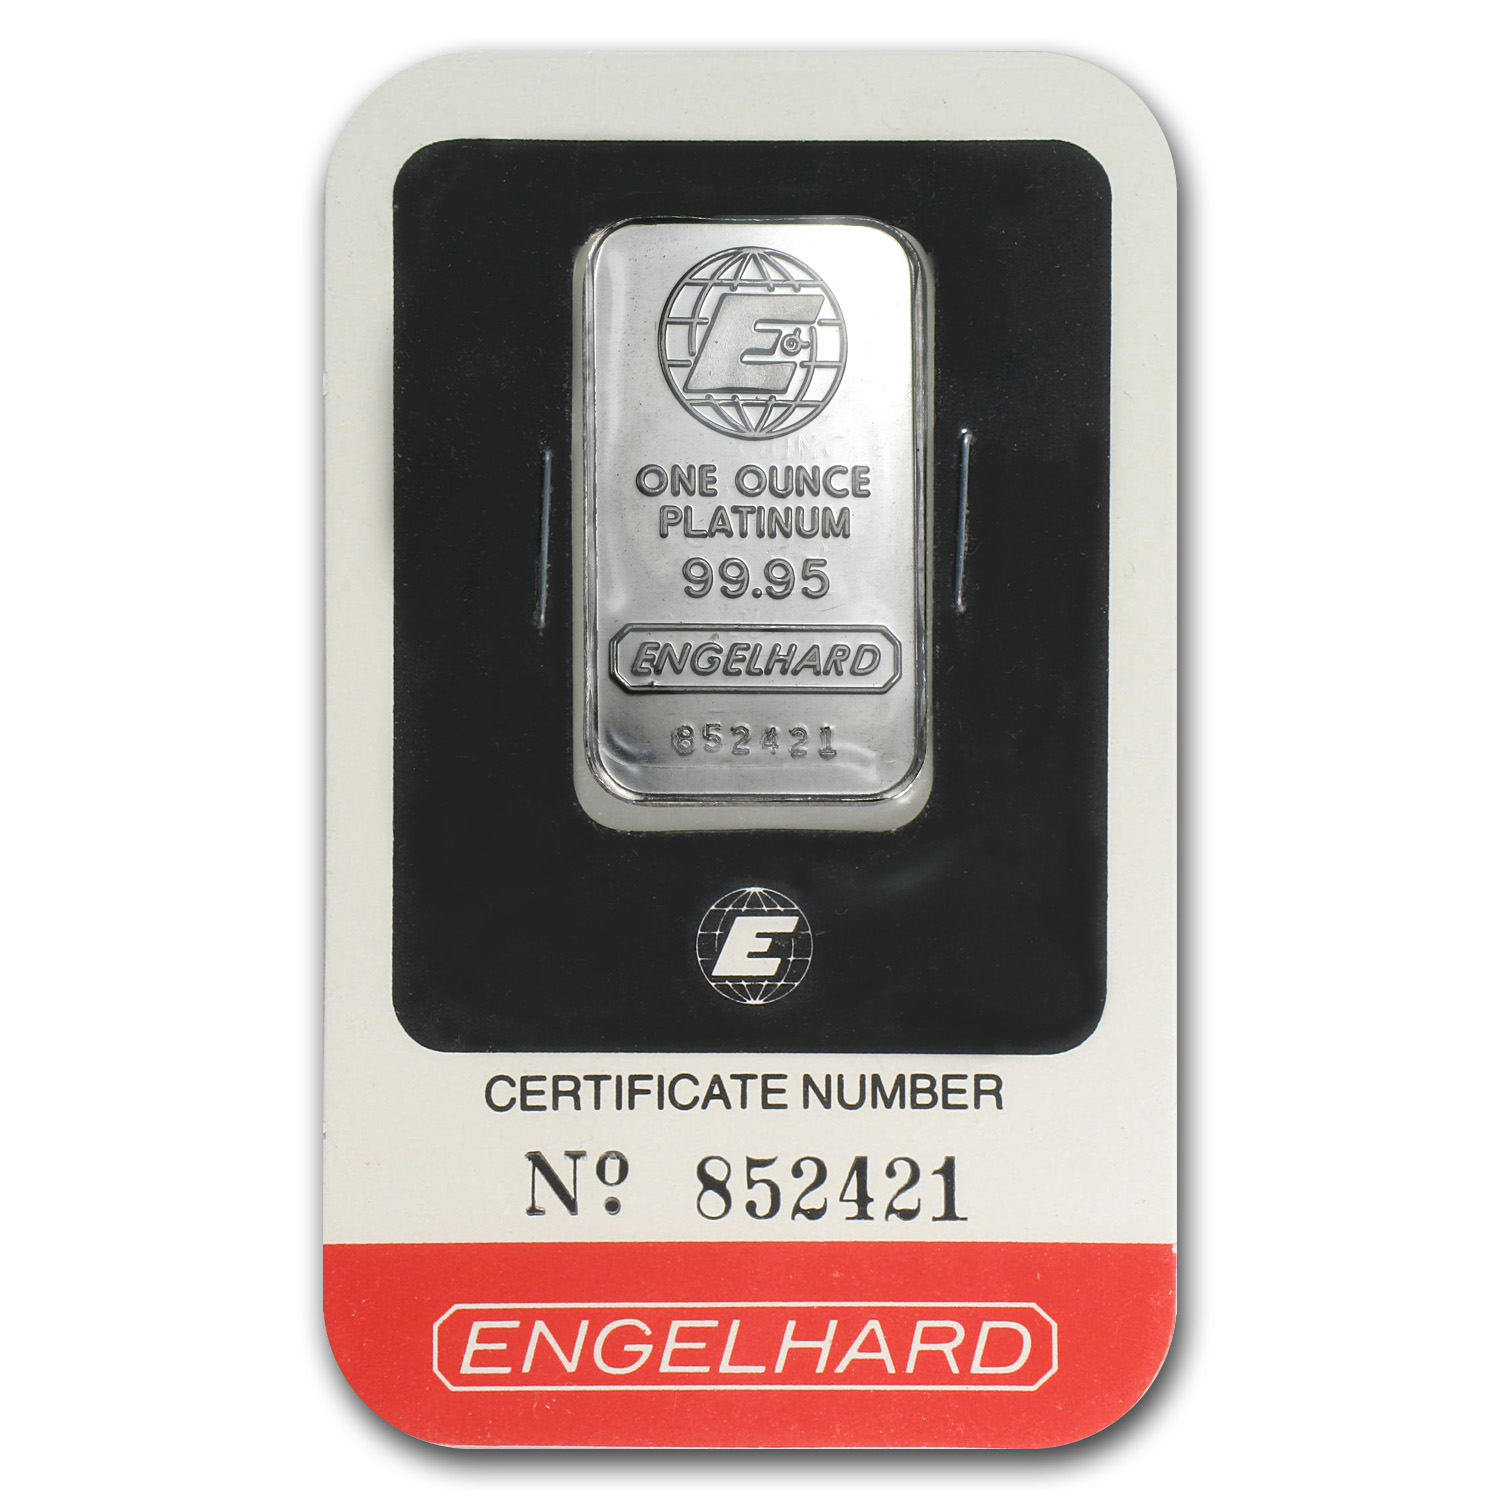 1 oz Platinum Bar - Engelhard (In Assay)